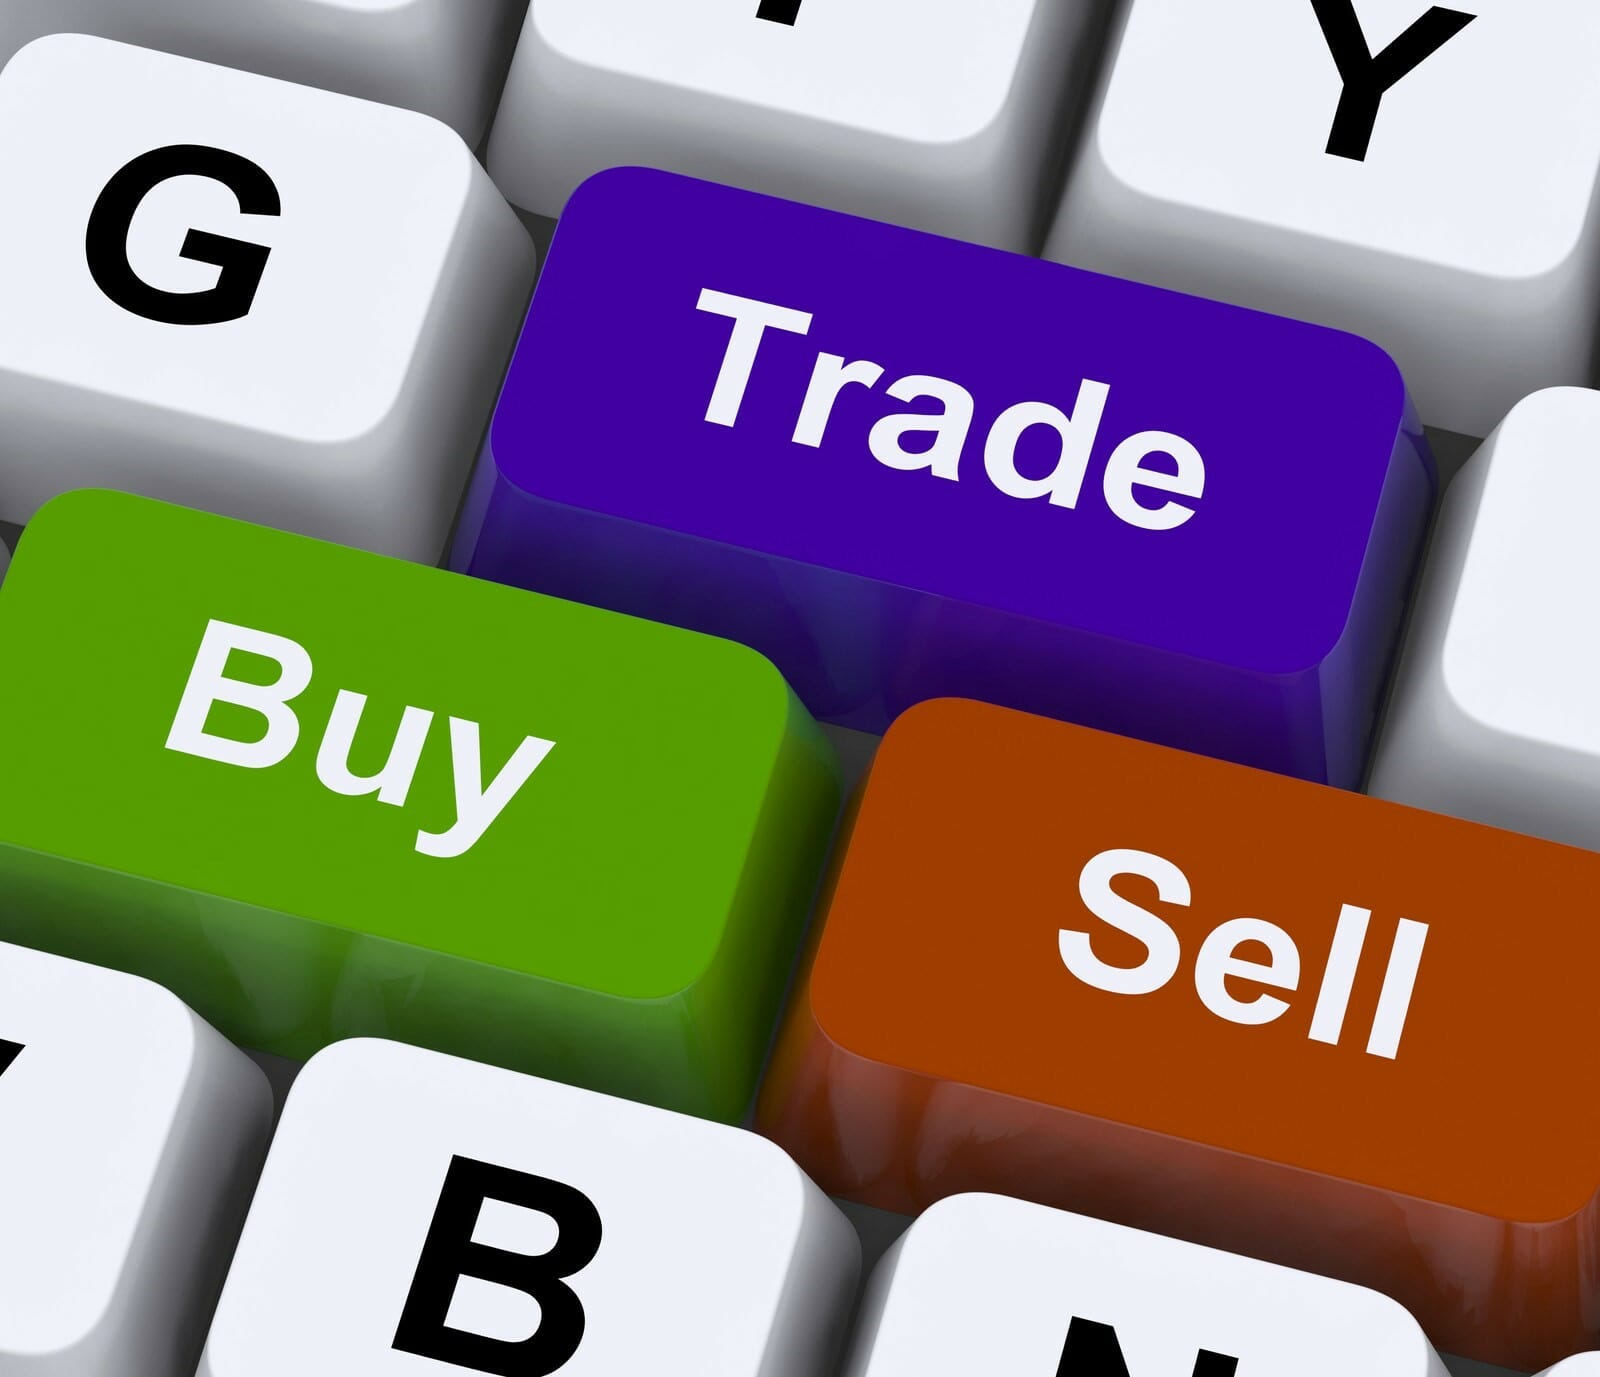 Trade Order - Definition, Types, and Practical Examples